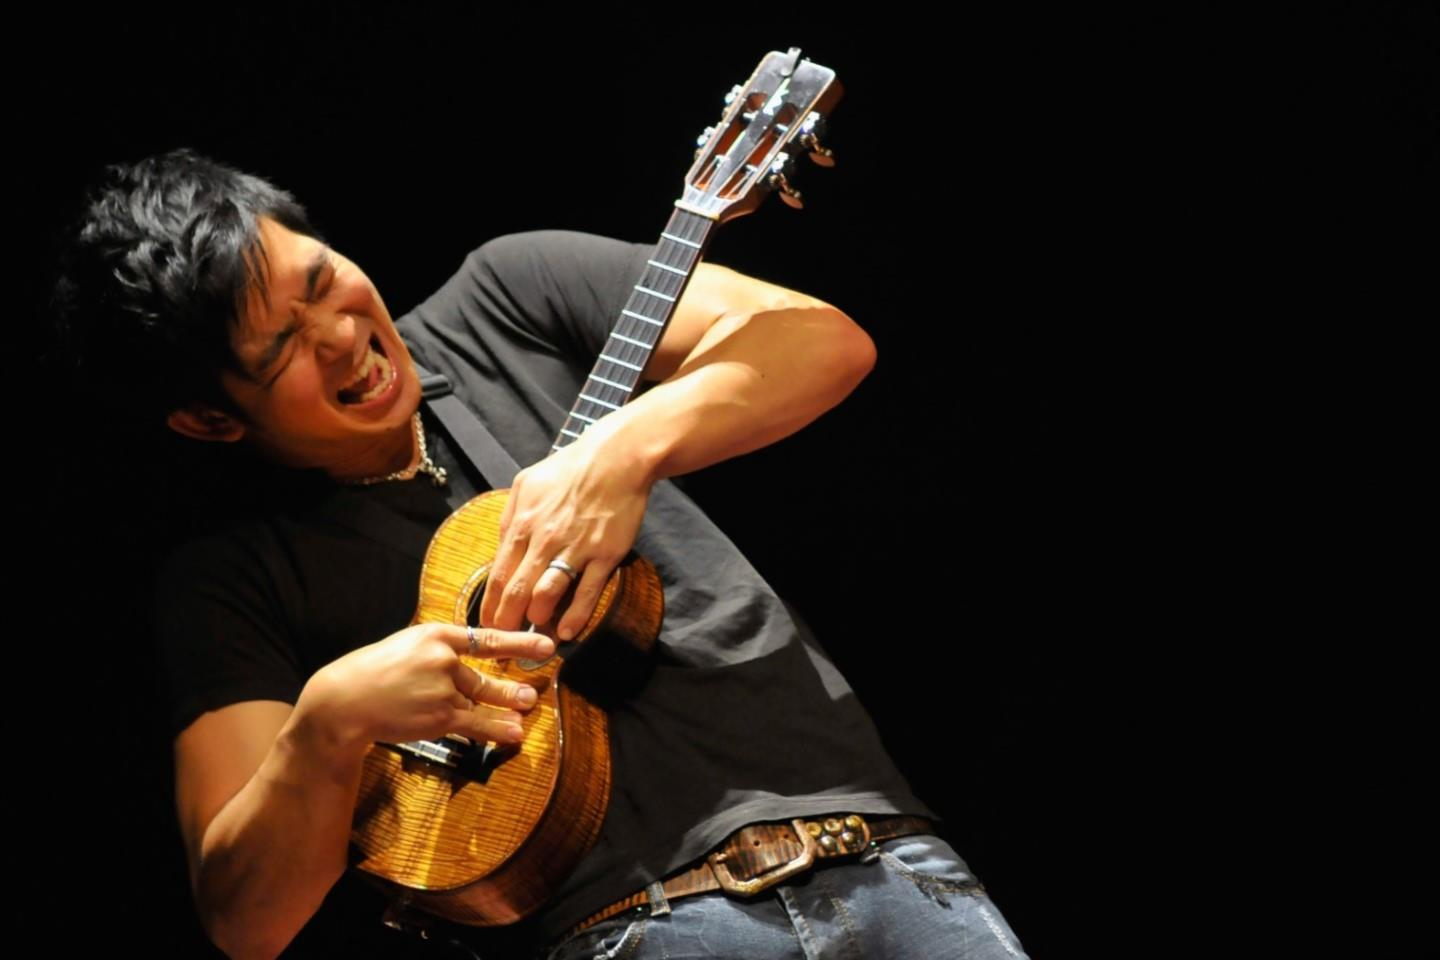 Julion Alvarez Tour Dates 2020 Jake Shimabukuro Tickets | Jake Shimabukuro Tour Dates 2020 and